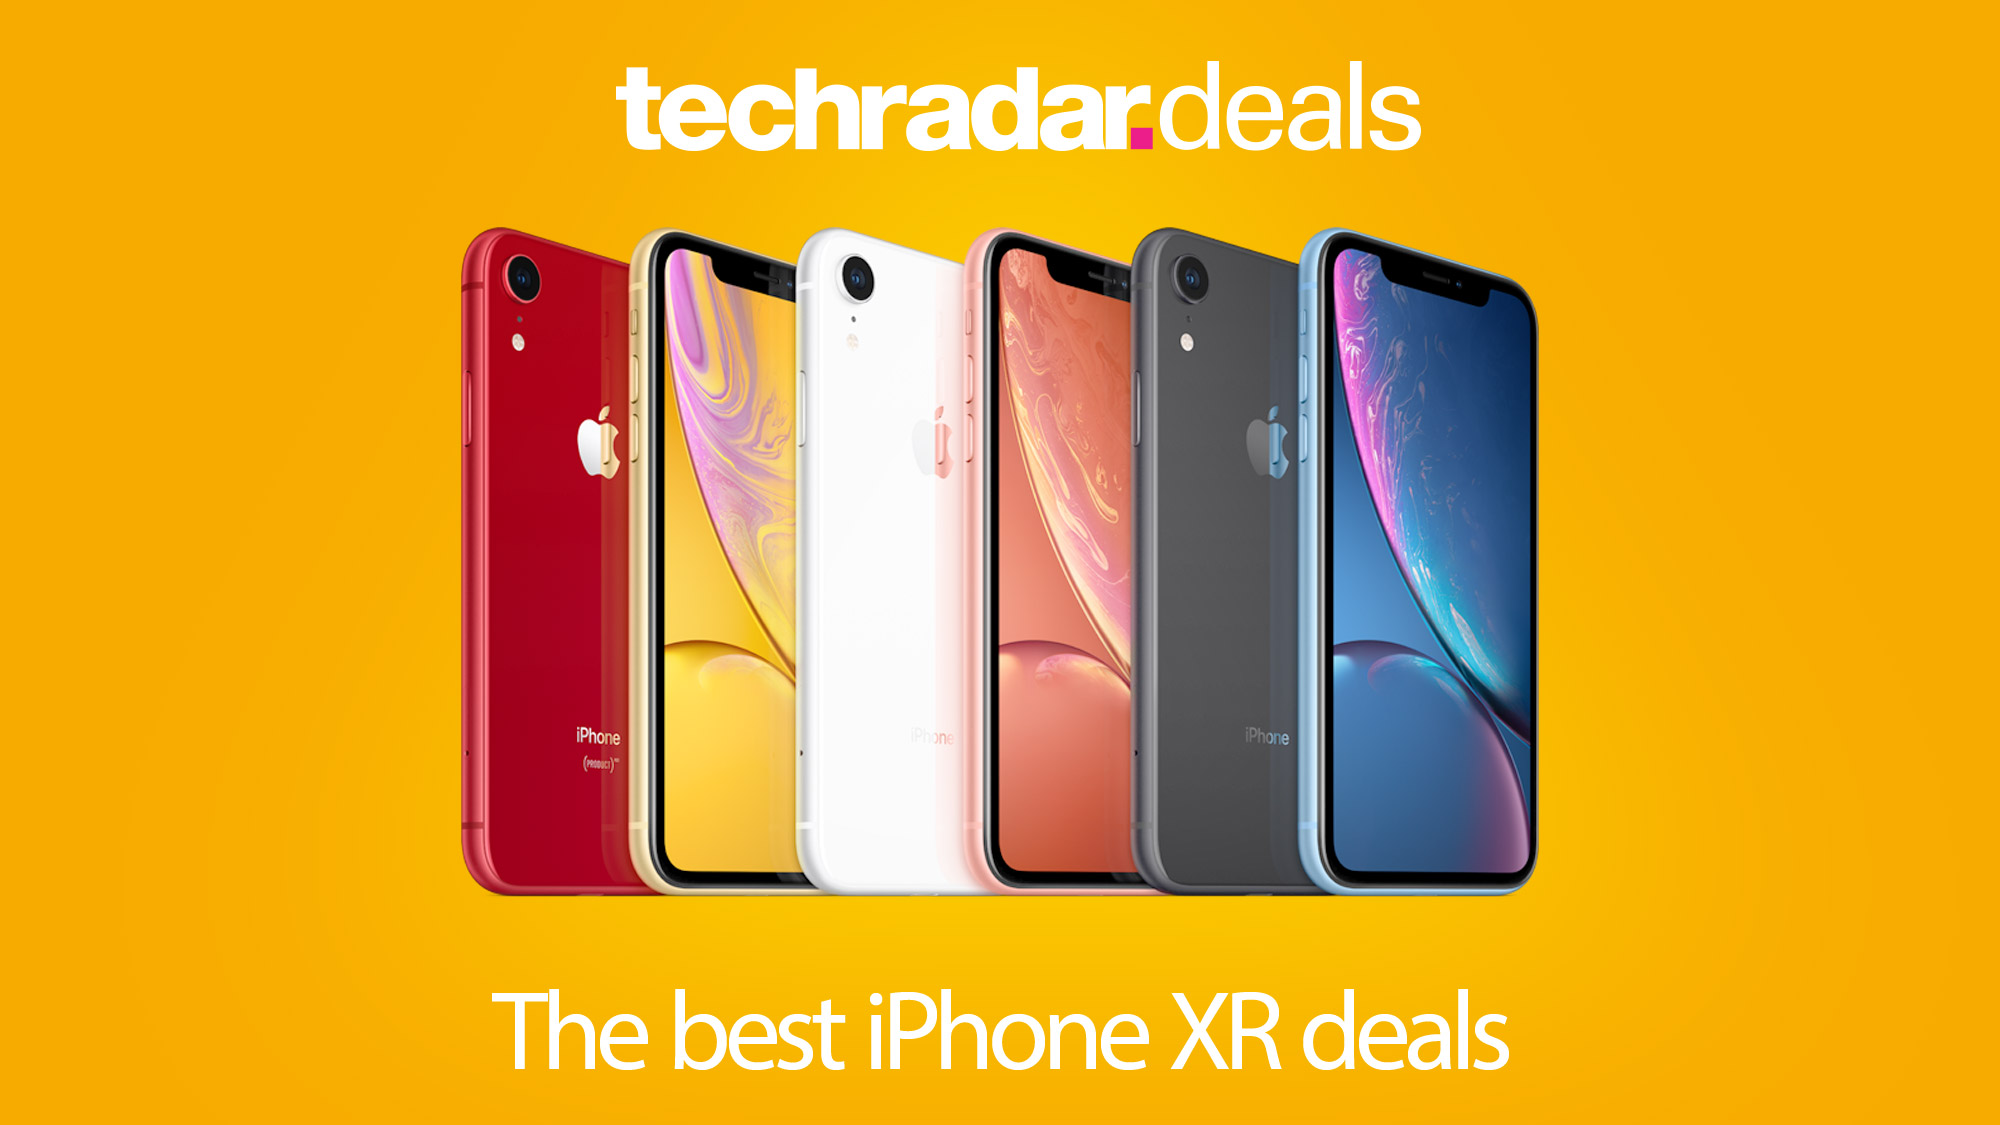 Iphone Xr Deals Get The Best Prices And Deals For September 2020 Techradar